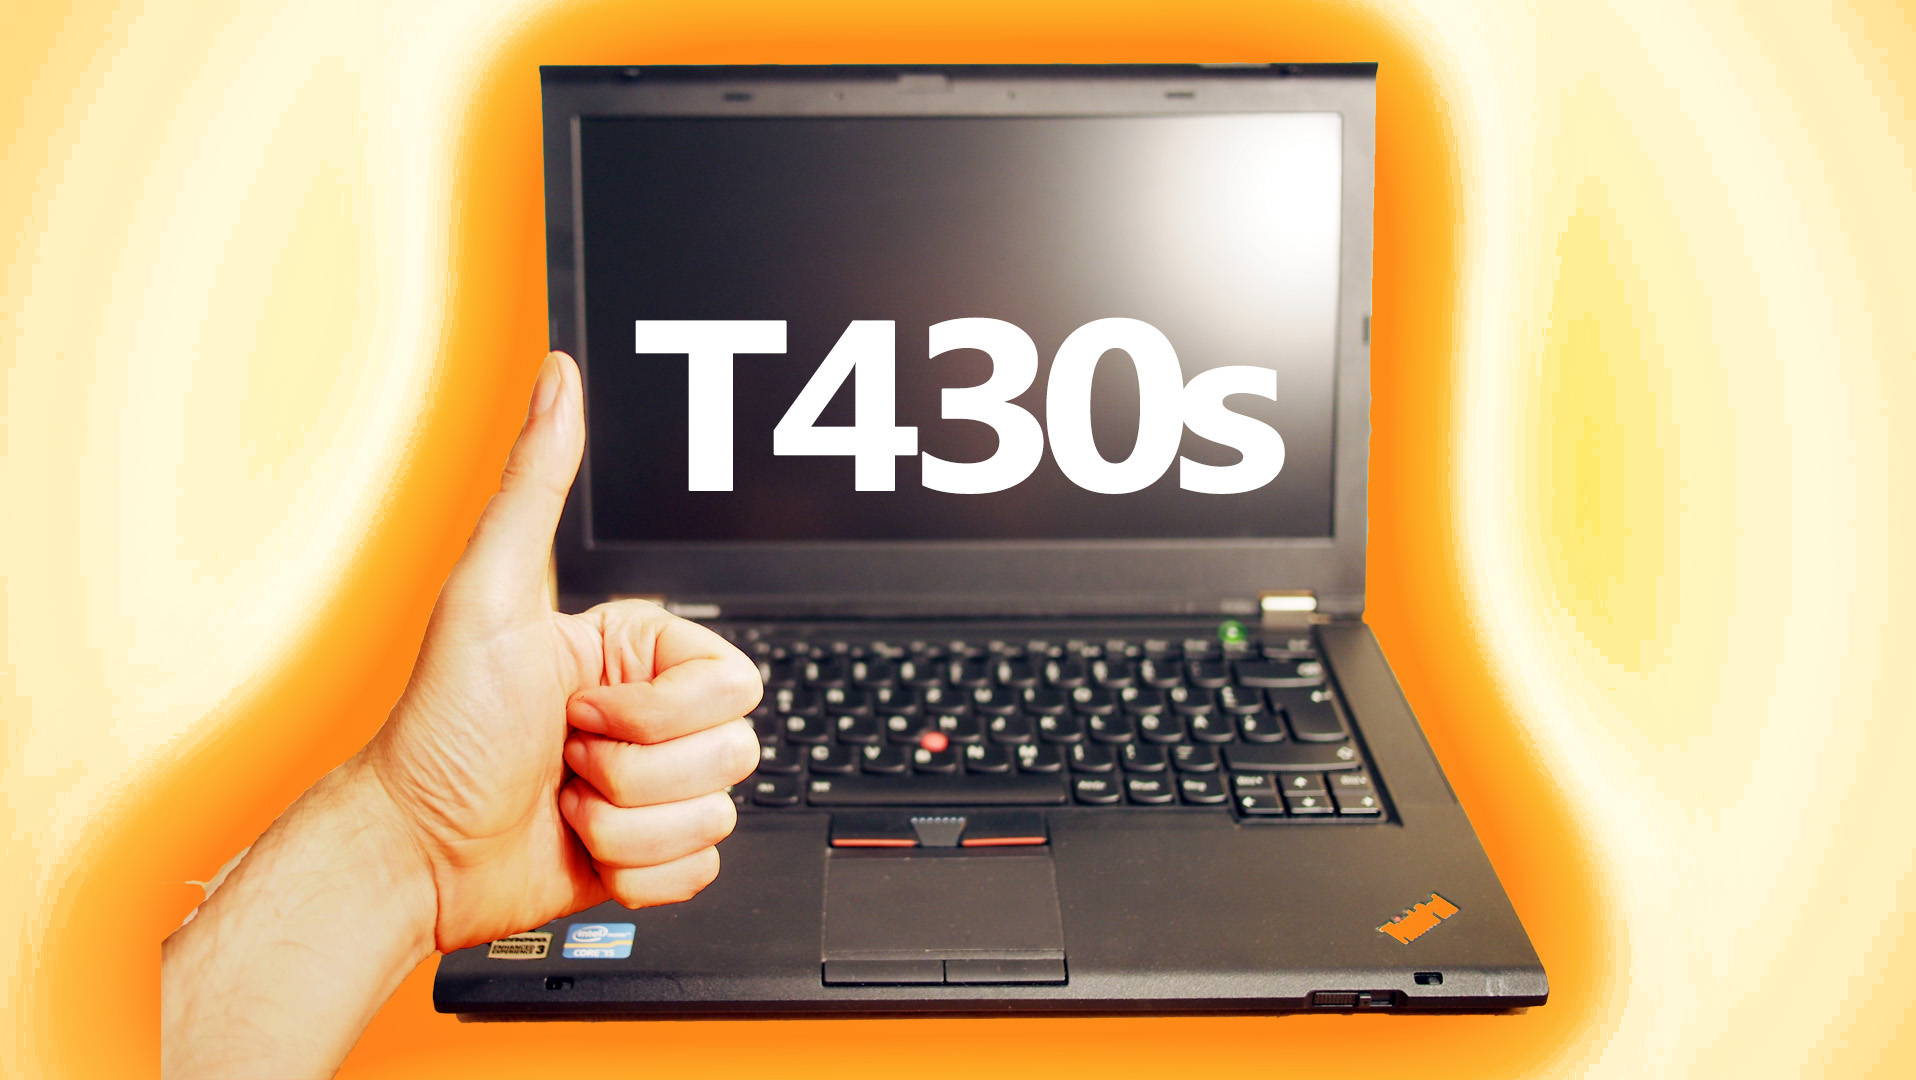 Lenovo ThinkPad T430s – best value old ThinkPad? – PANORAMA